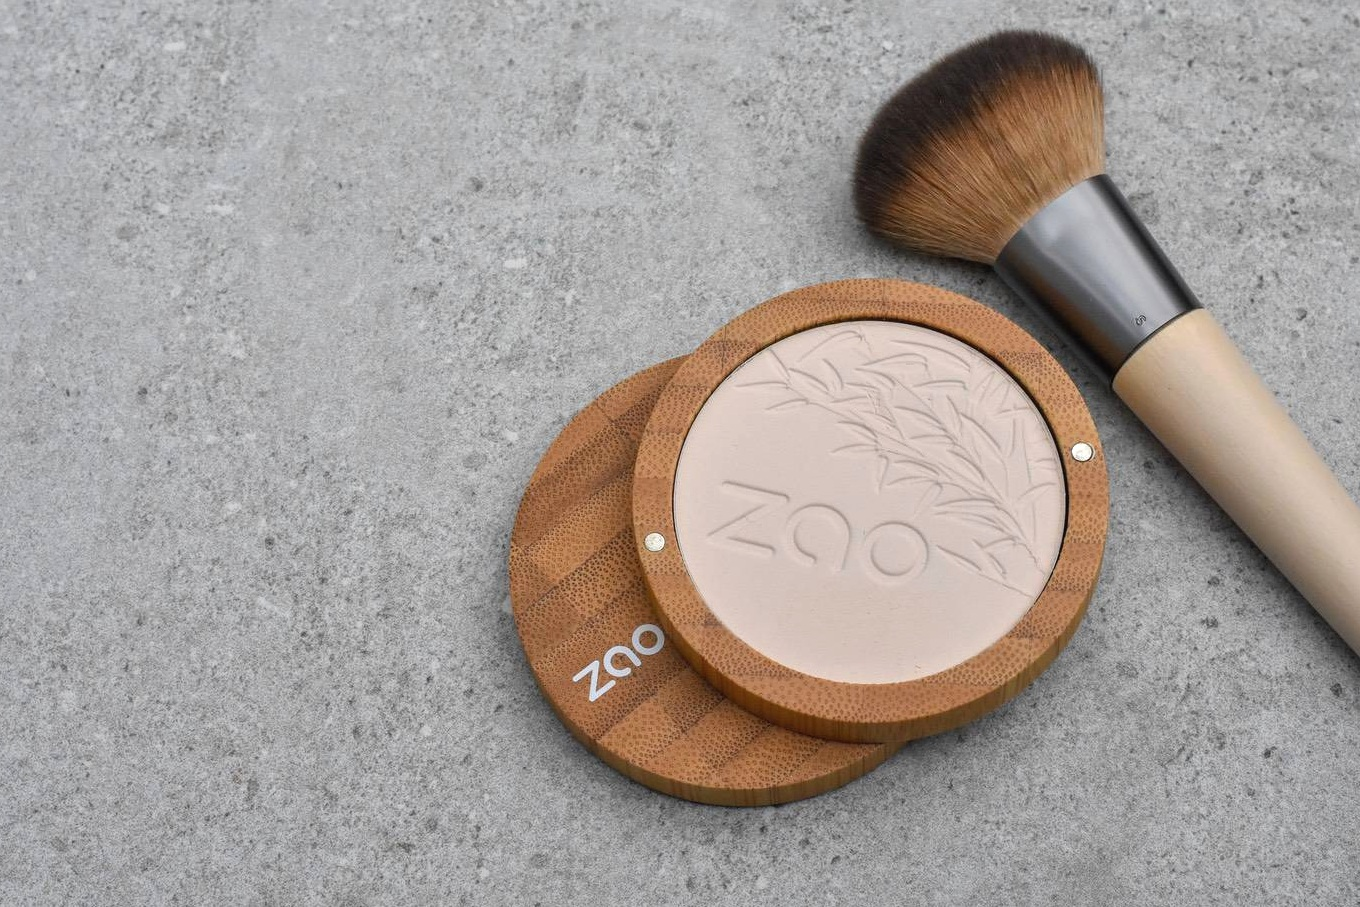 zao refillables - For some reason, I was a bit sceptical about Zao. I'd seen their products popping in some of the 'plastic free' shops, but wasn't convinced that they could live up to that claim.I had a really positive email exchange with the Director of Zao, who was completely transparent about what they can do, can't do, will do and won't do.My view now is that some products are better than others. I don't believe that a refillable mascara or lipgloss is much of an improvement (the only plastic 'saving' being the wand). But I do think the refillable powders, eye-shadows and blushers are truly fabulous.Overall, they definitely one of the good guys :-)